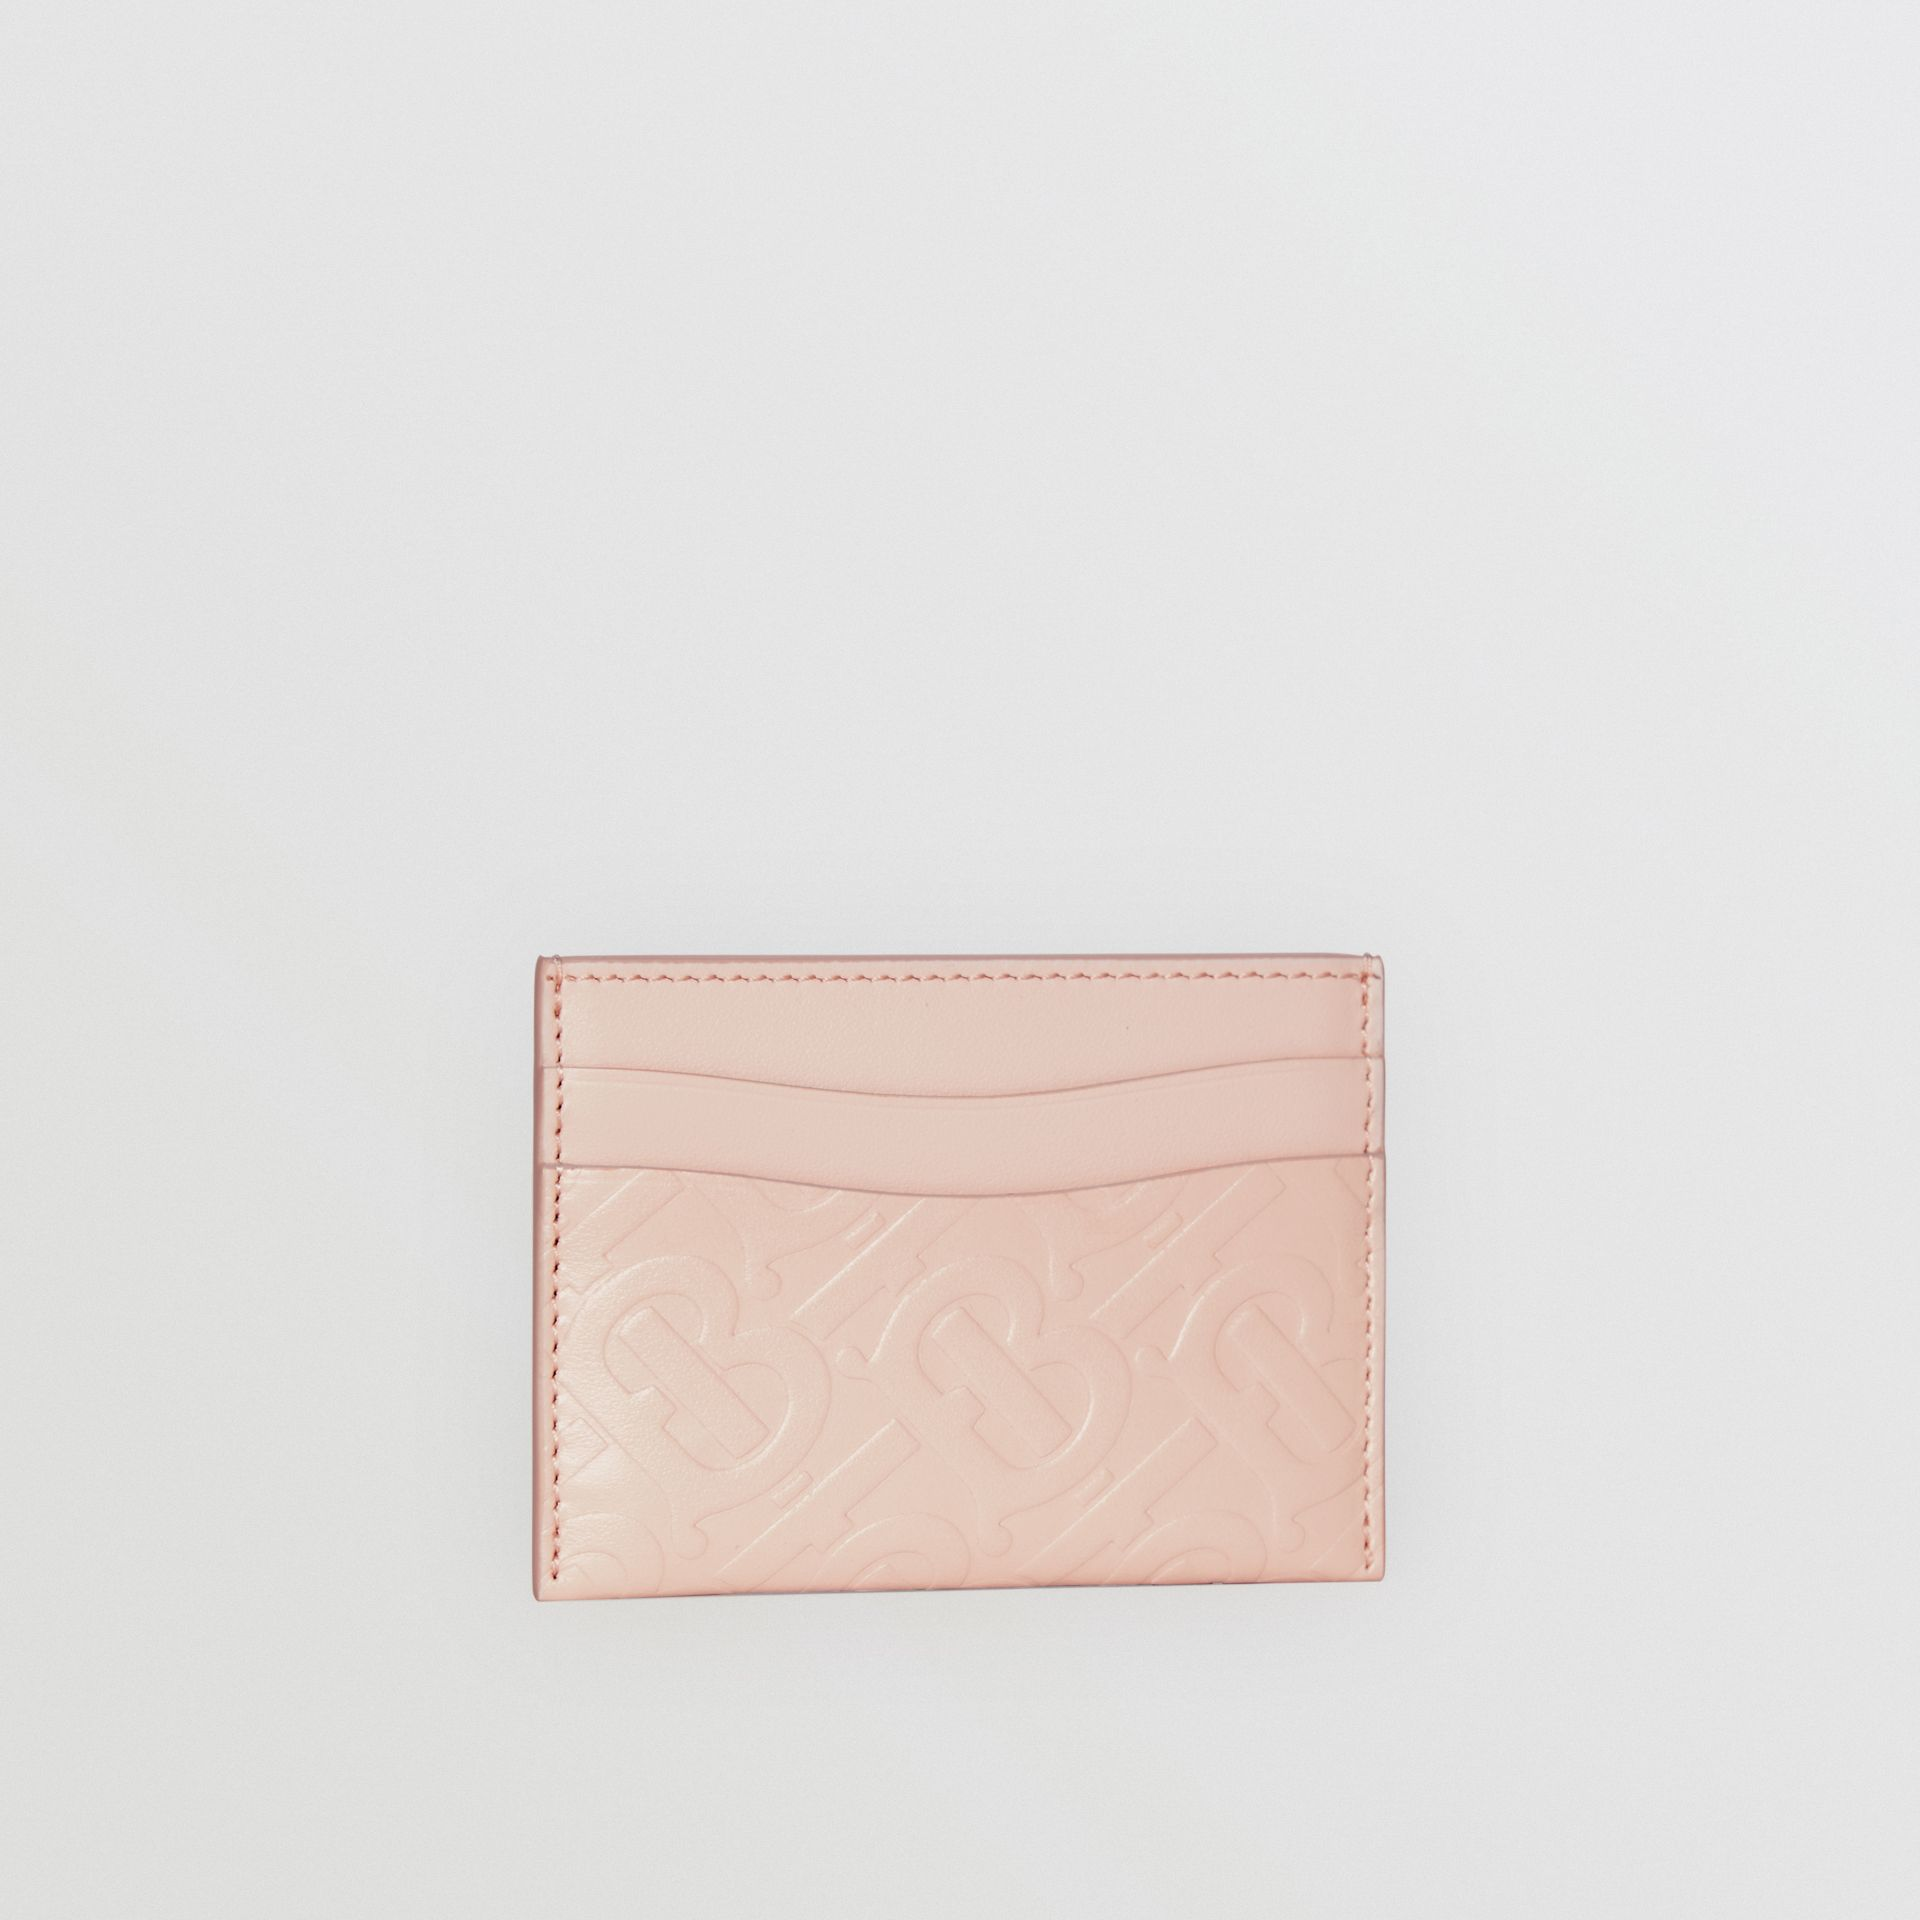 Monogram Leather Card Case in Rose Beige - Women | Burberry - gallery image 3